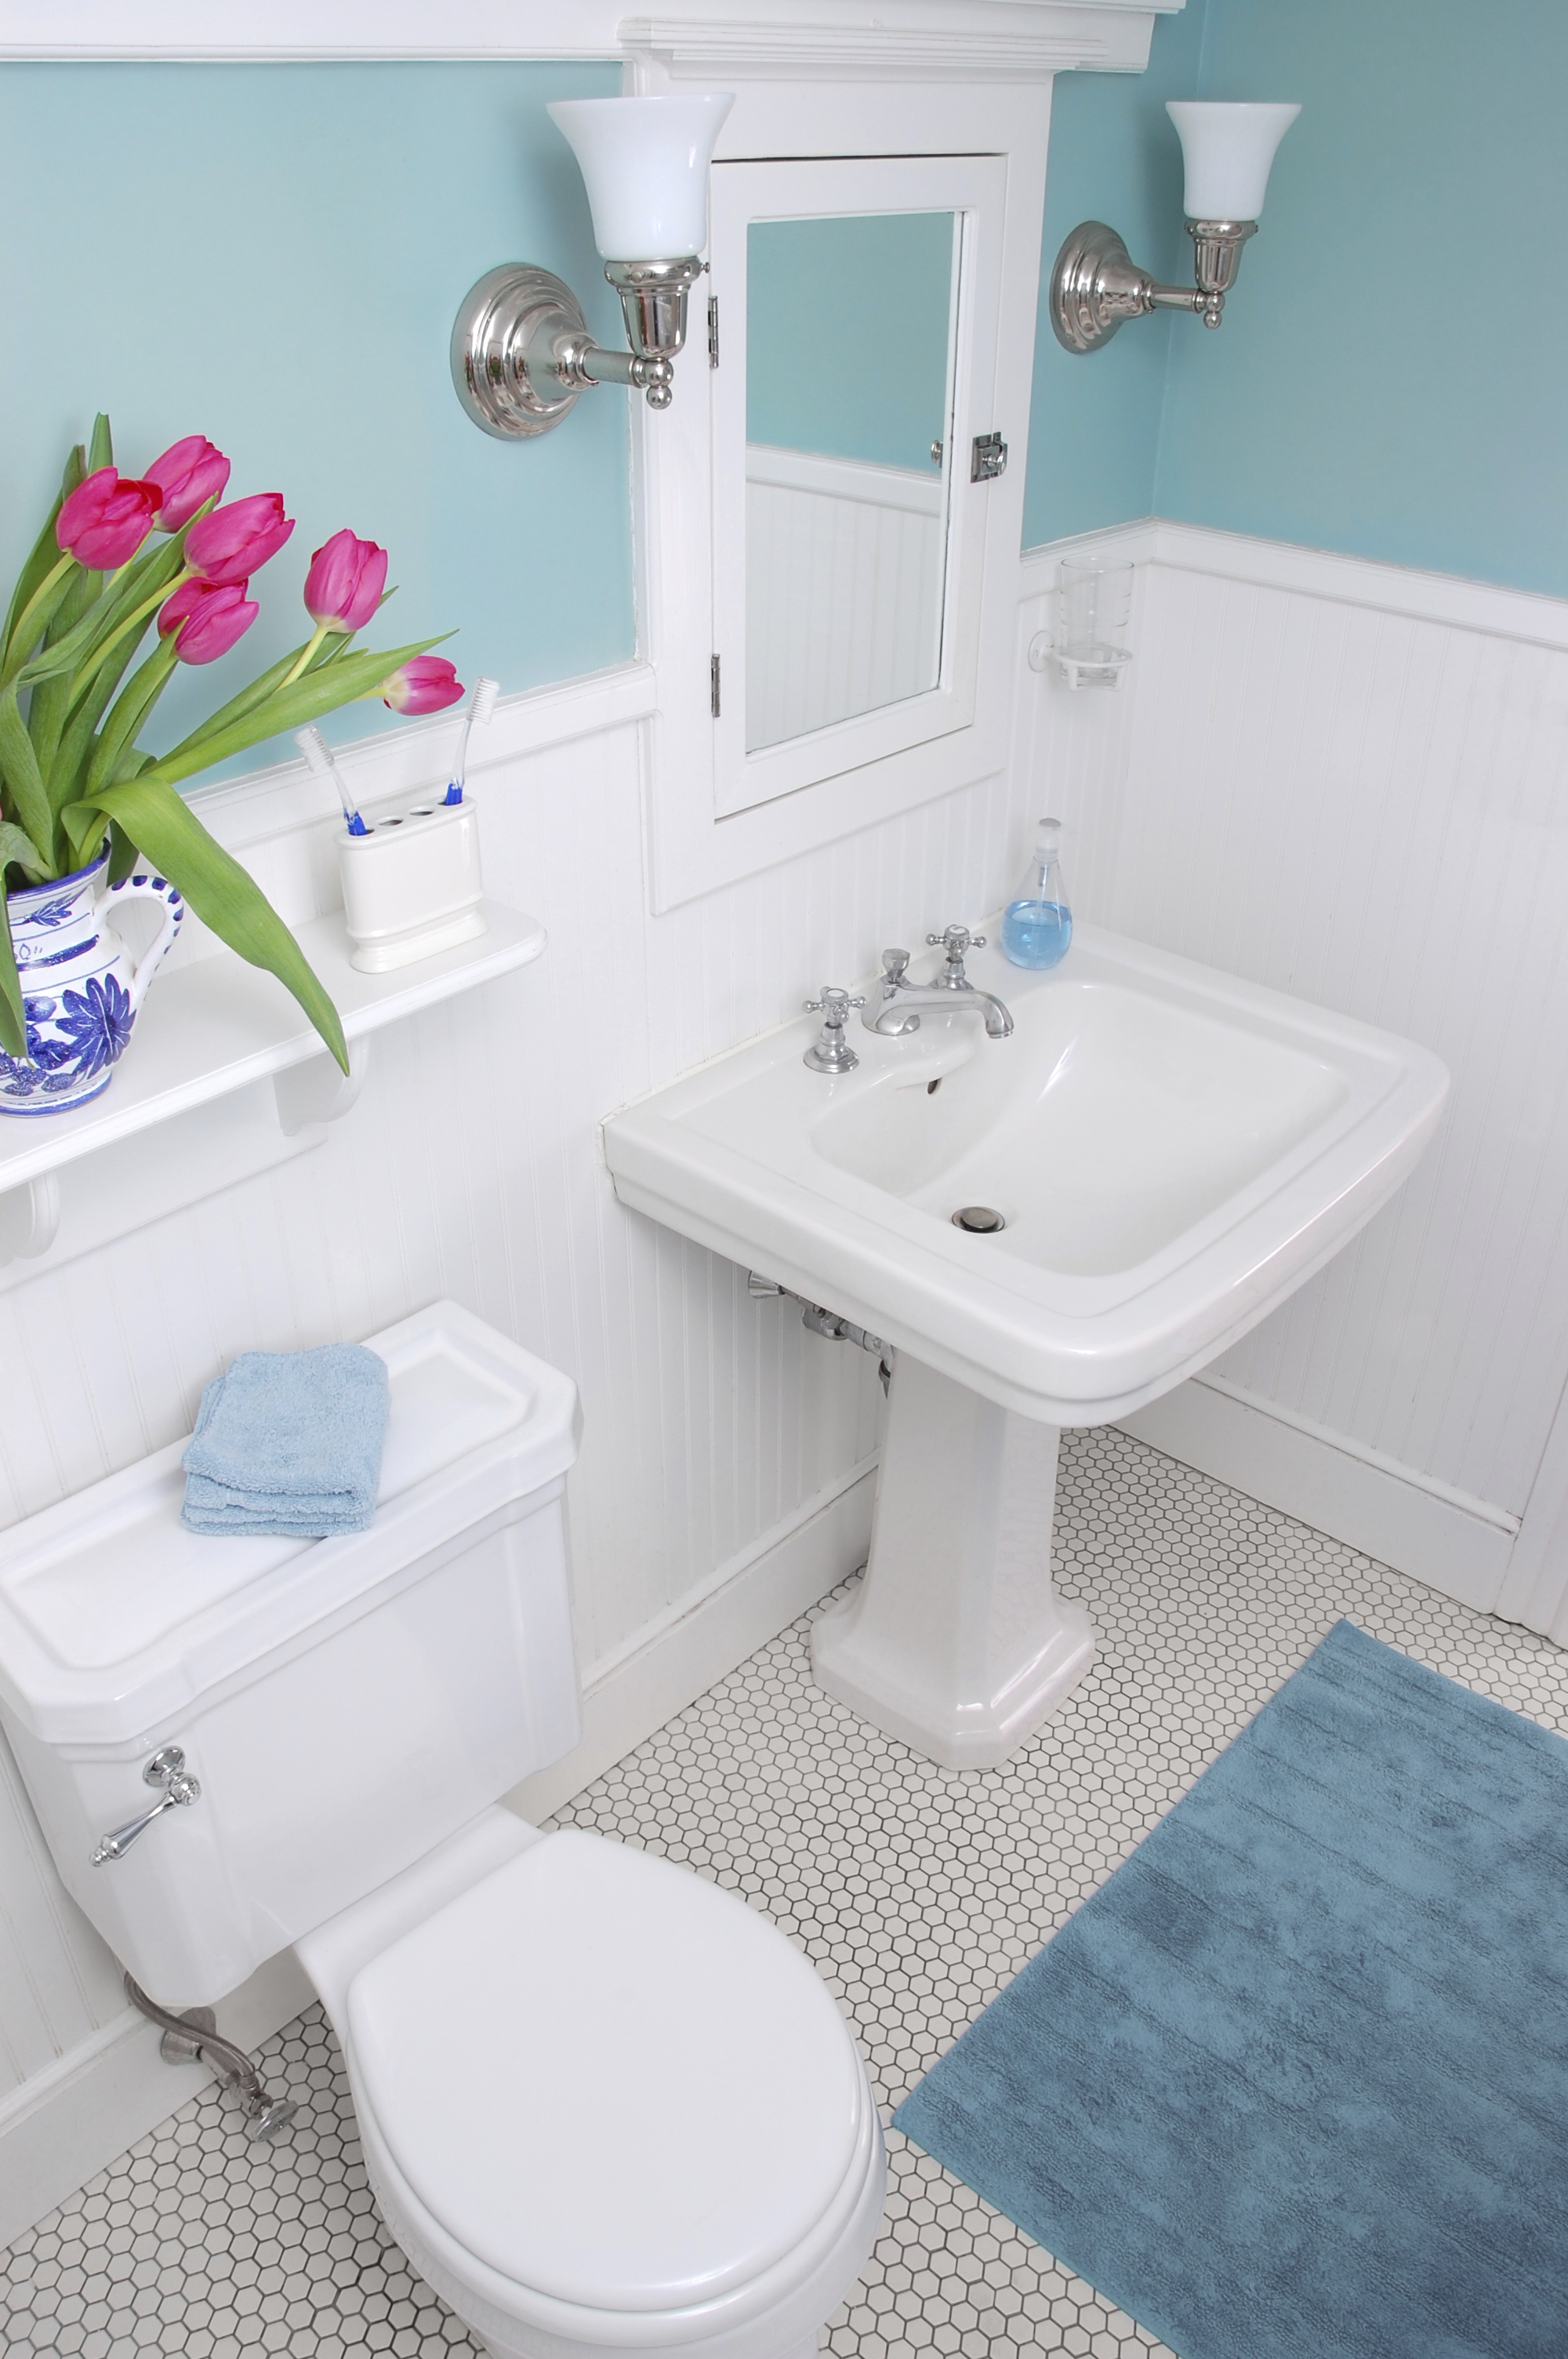 tasty how to decorate a blue bathroom. How to Breathe Life into a Windowless Room  Millennial Living